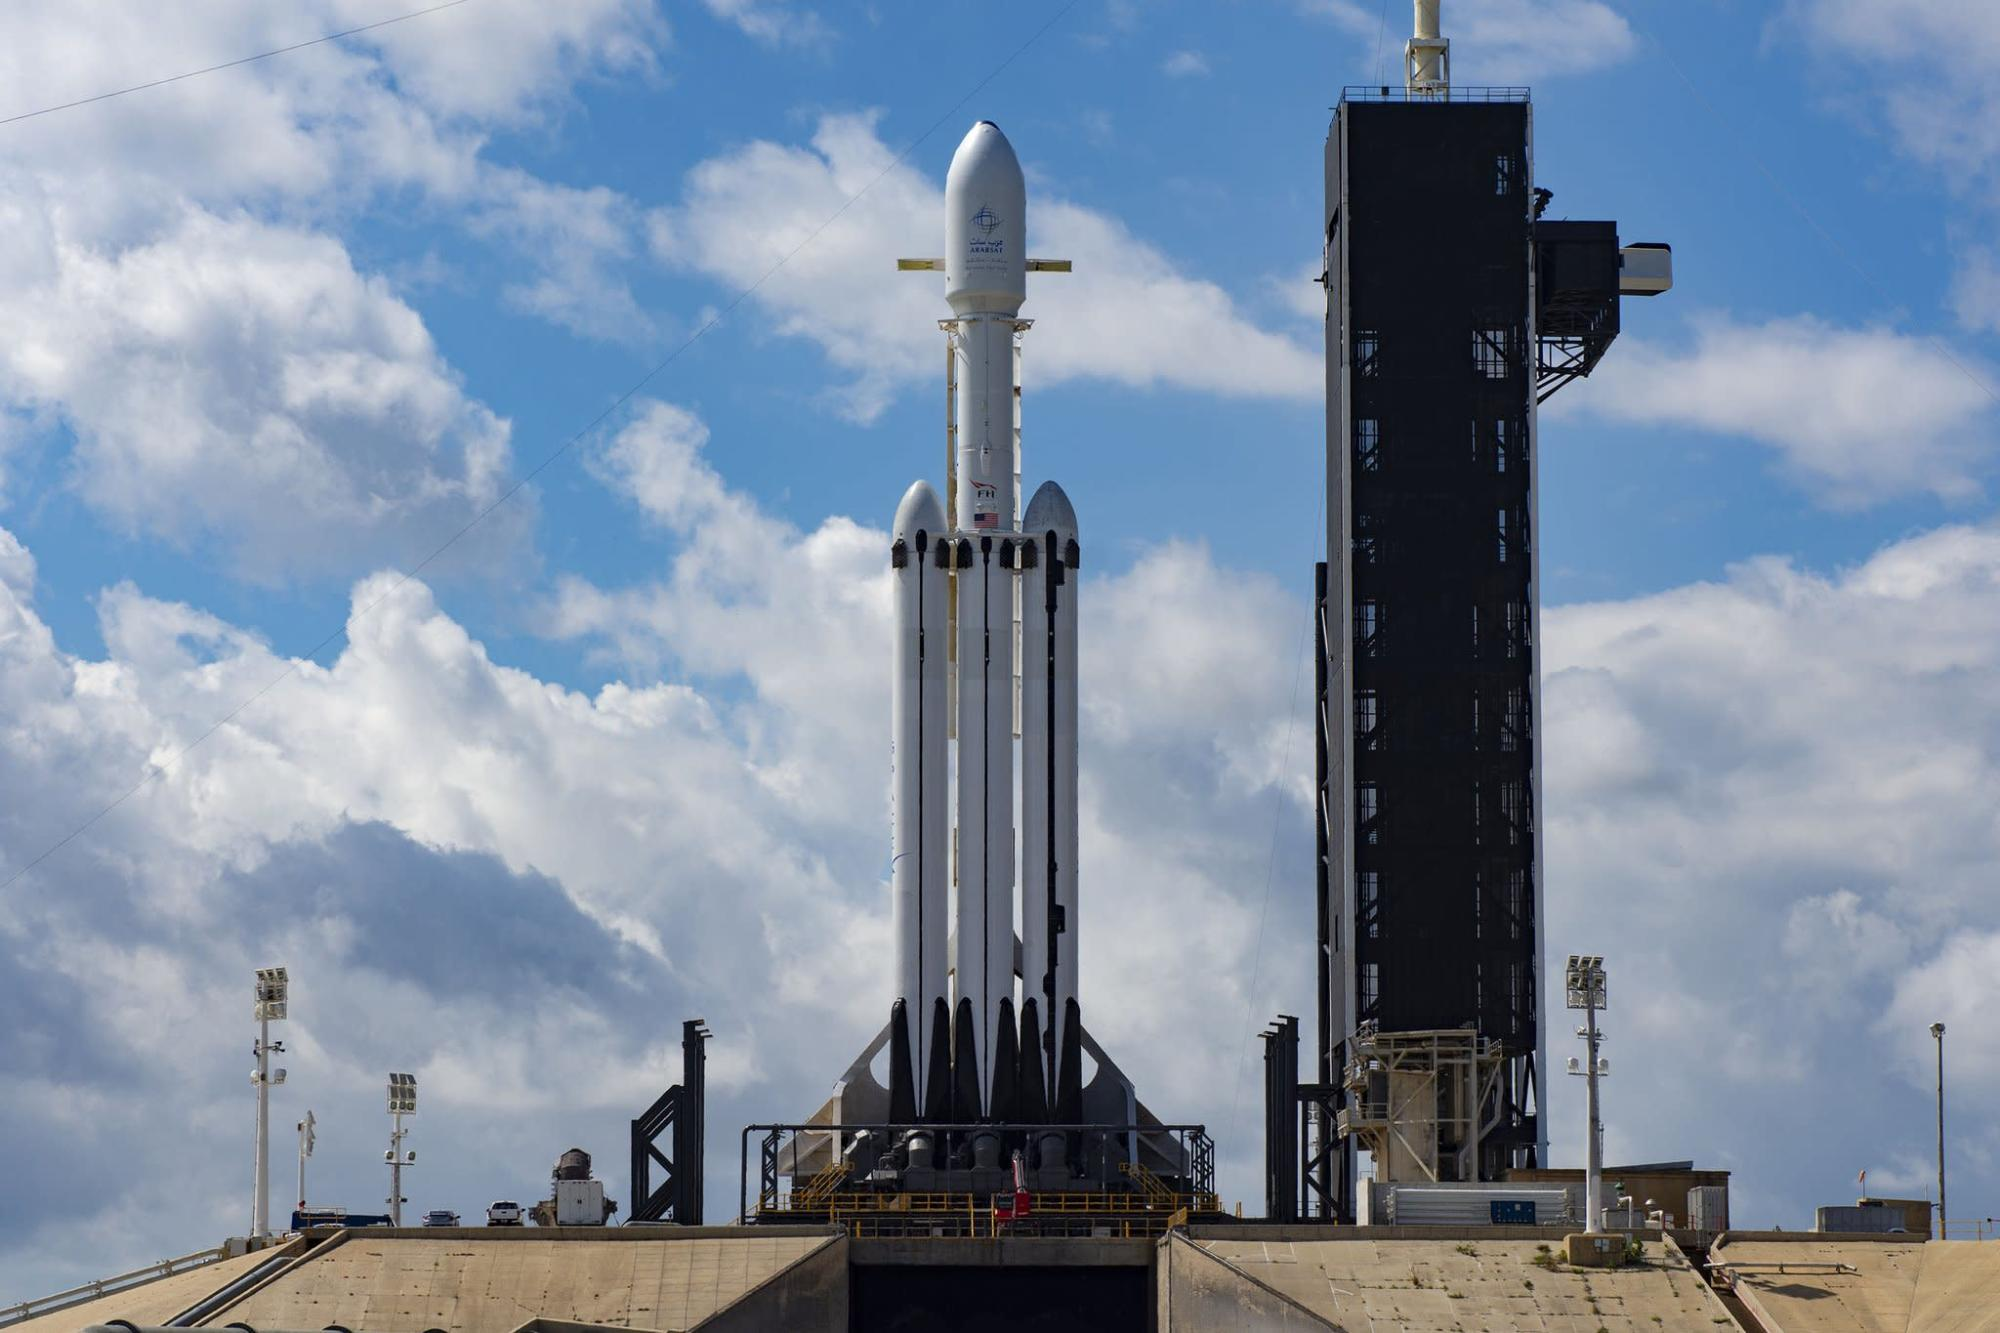 SpaceX's Falcon Heavy rocket to deliver an Astrobotic lander and NASA water-hunting rover to the Moon in 2023 – Yahoo Finance Australia